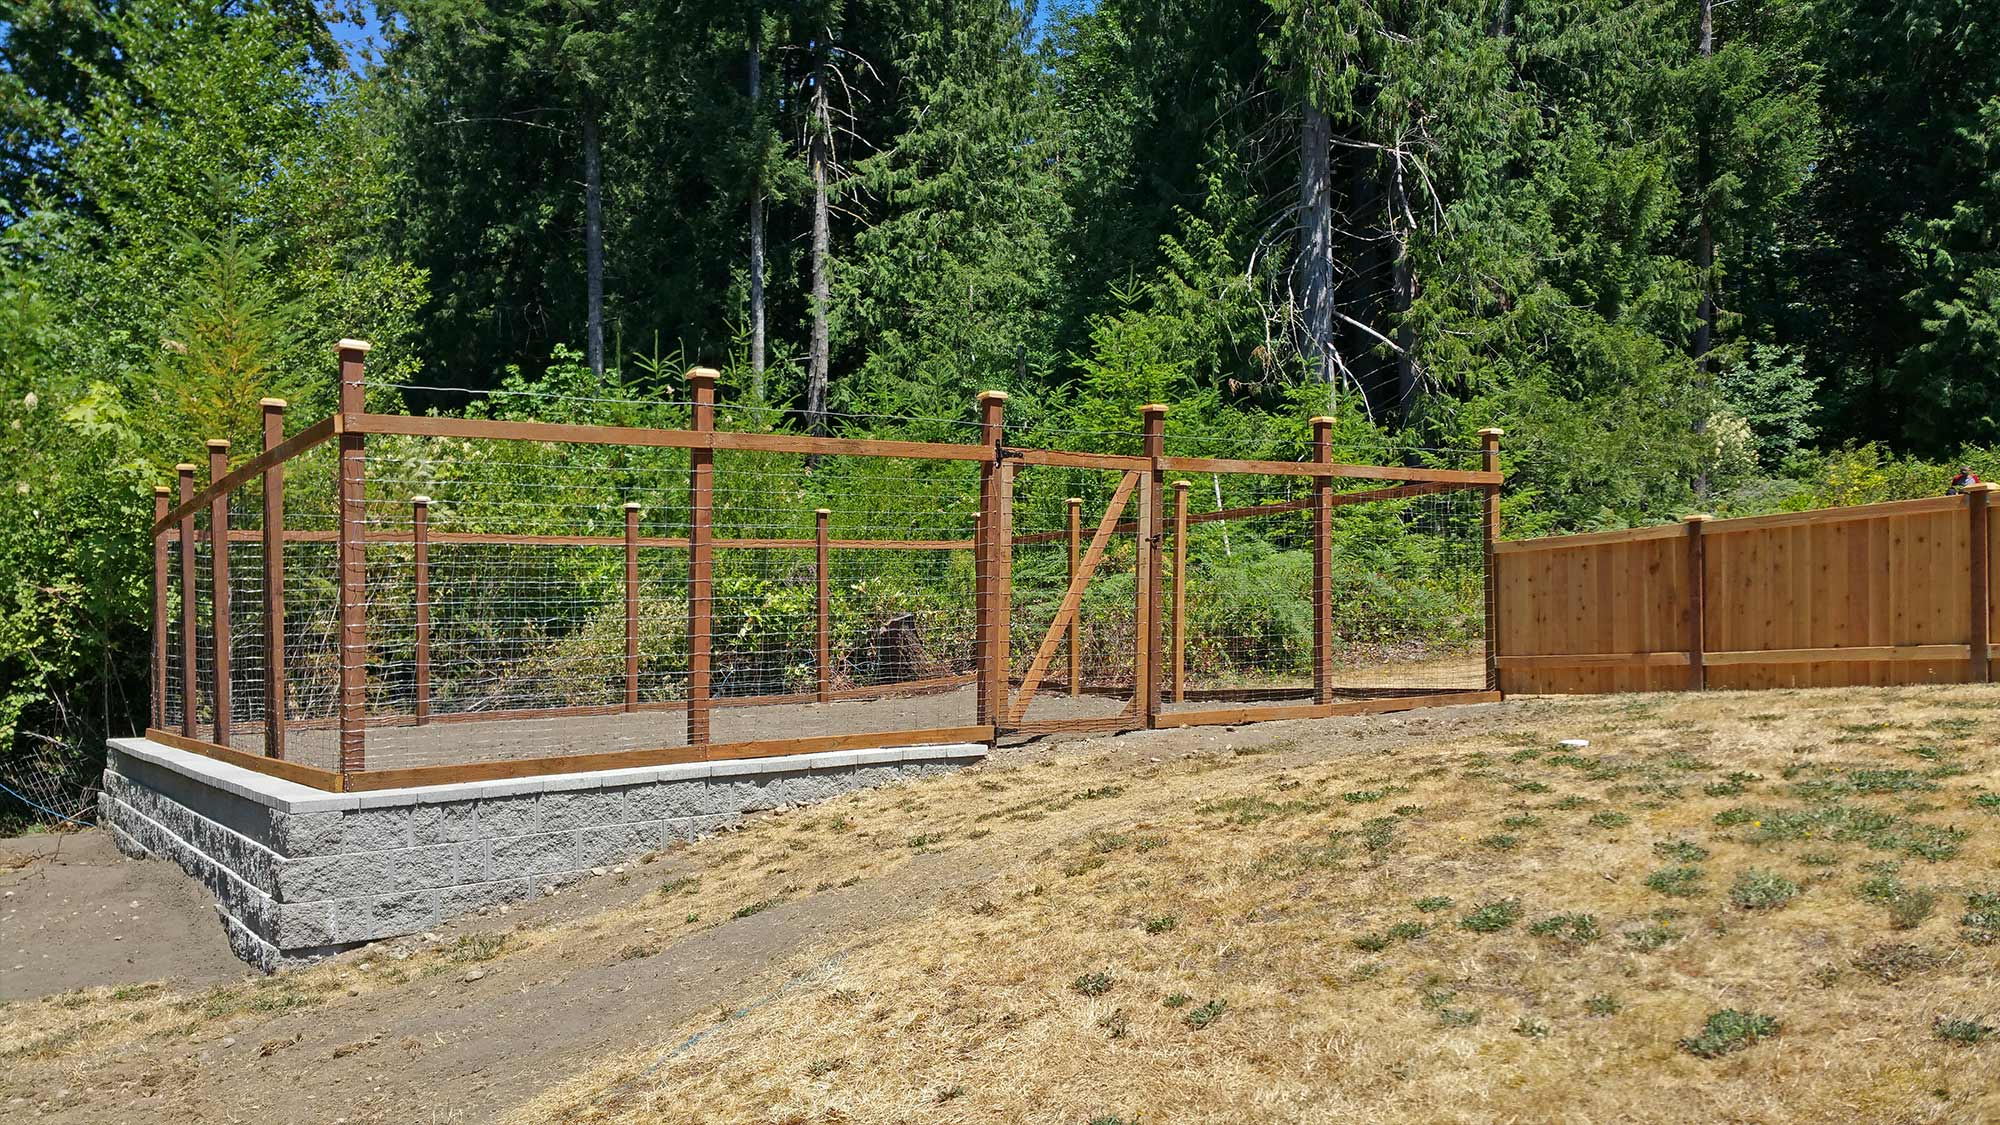 this steamboat island garden fence will keep the deer out of this raised  garden area. LTBIQXQ